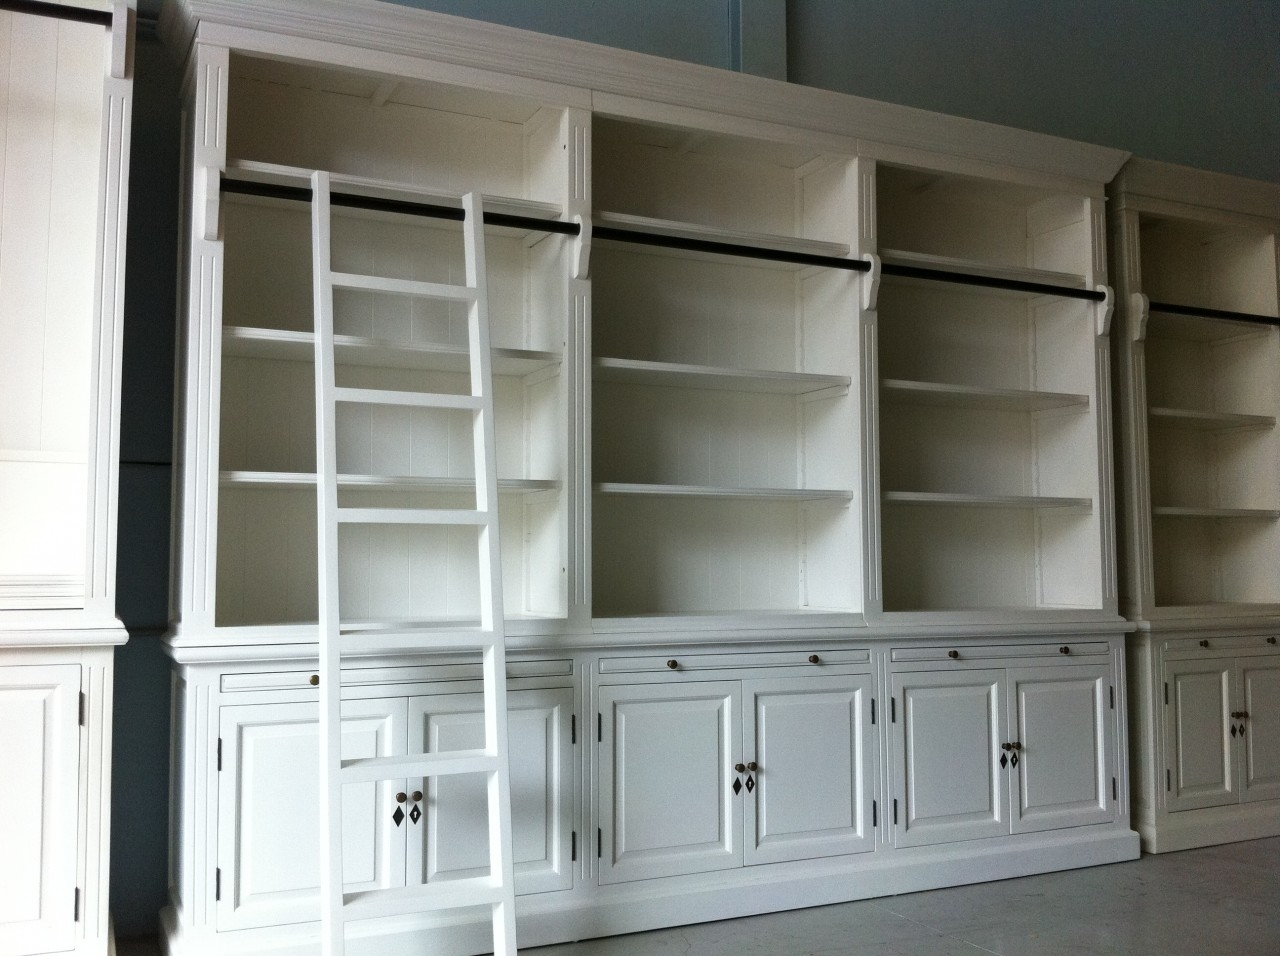 White Cabinets And Bookshelf Creative Cabinets Decoration For White Bookcase With Cupboard (View 14 of 15)